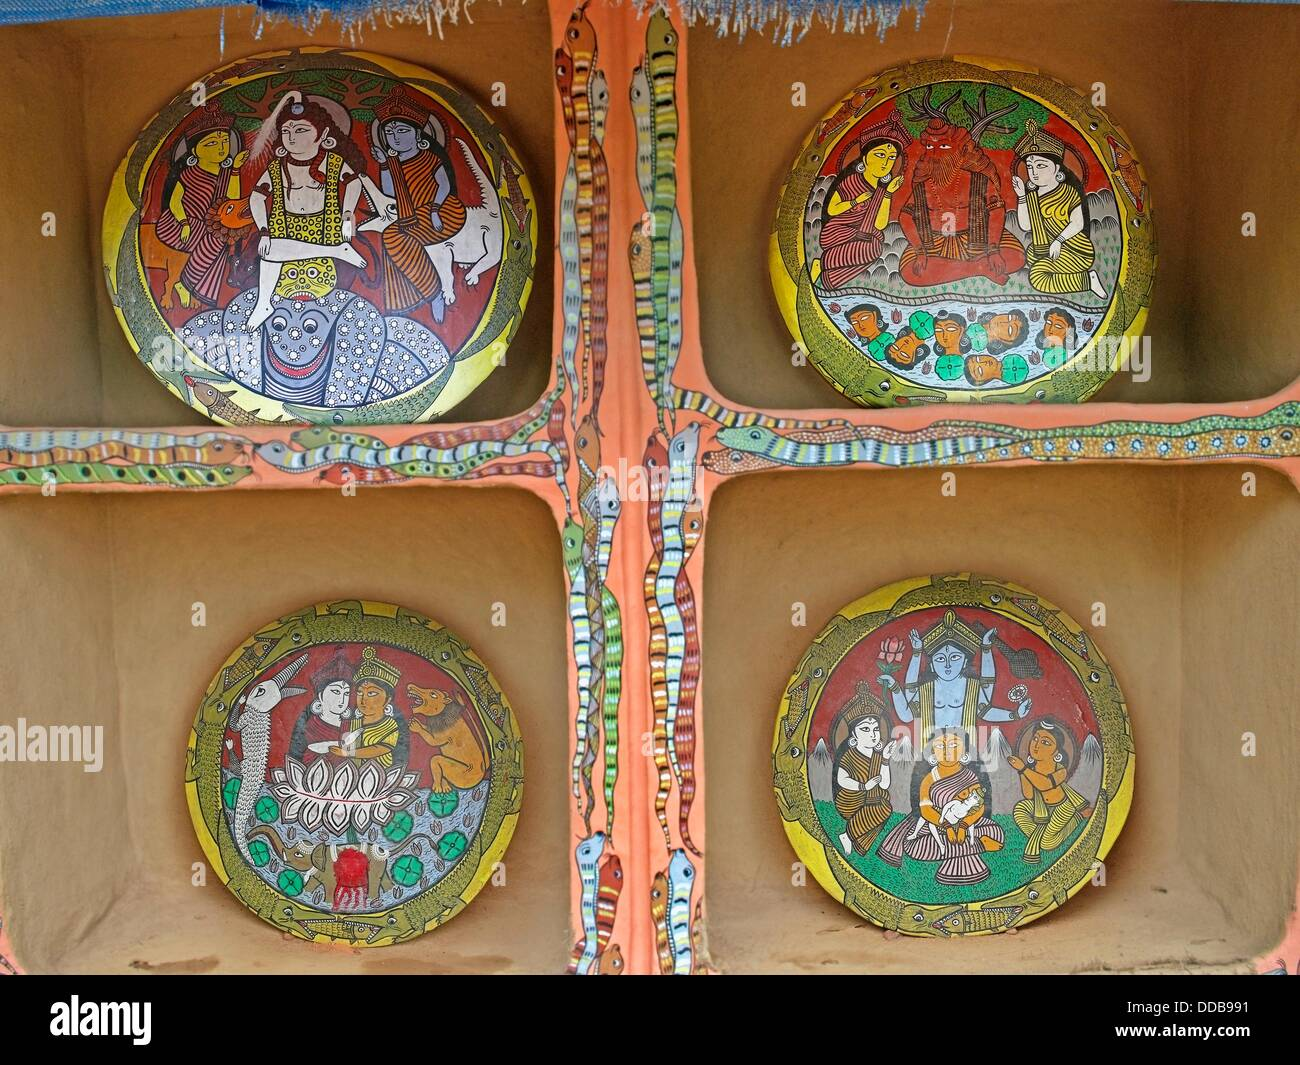 Painting of the Myth of the Ganga-Durga clash on terracotta plates are displayed in a Museum, Madhya pradesh, India - Stock Image